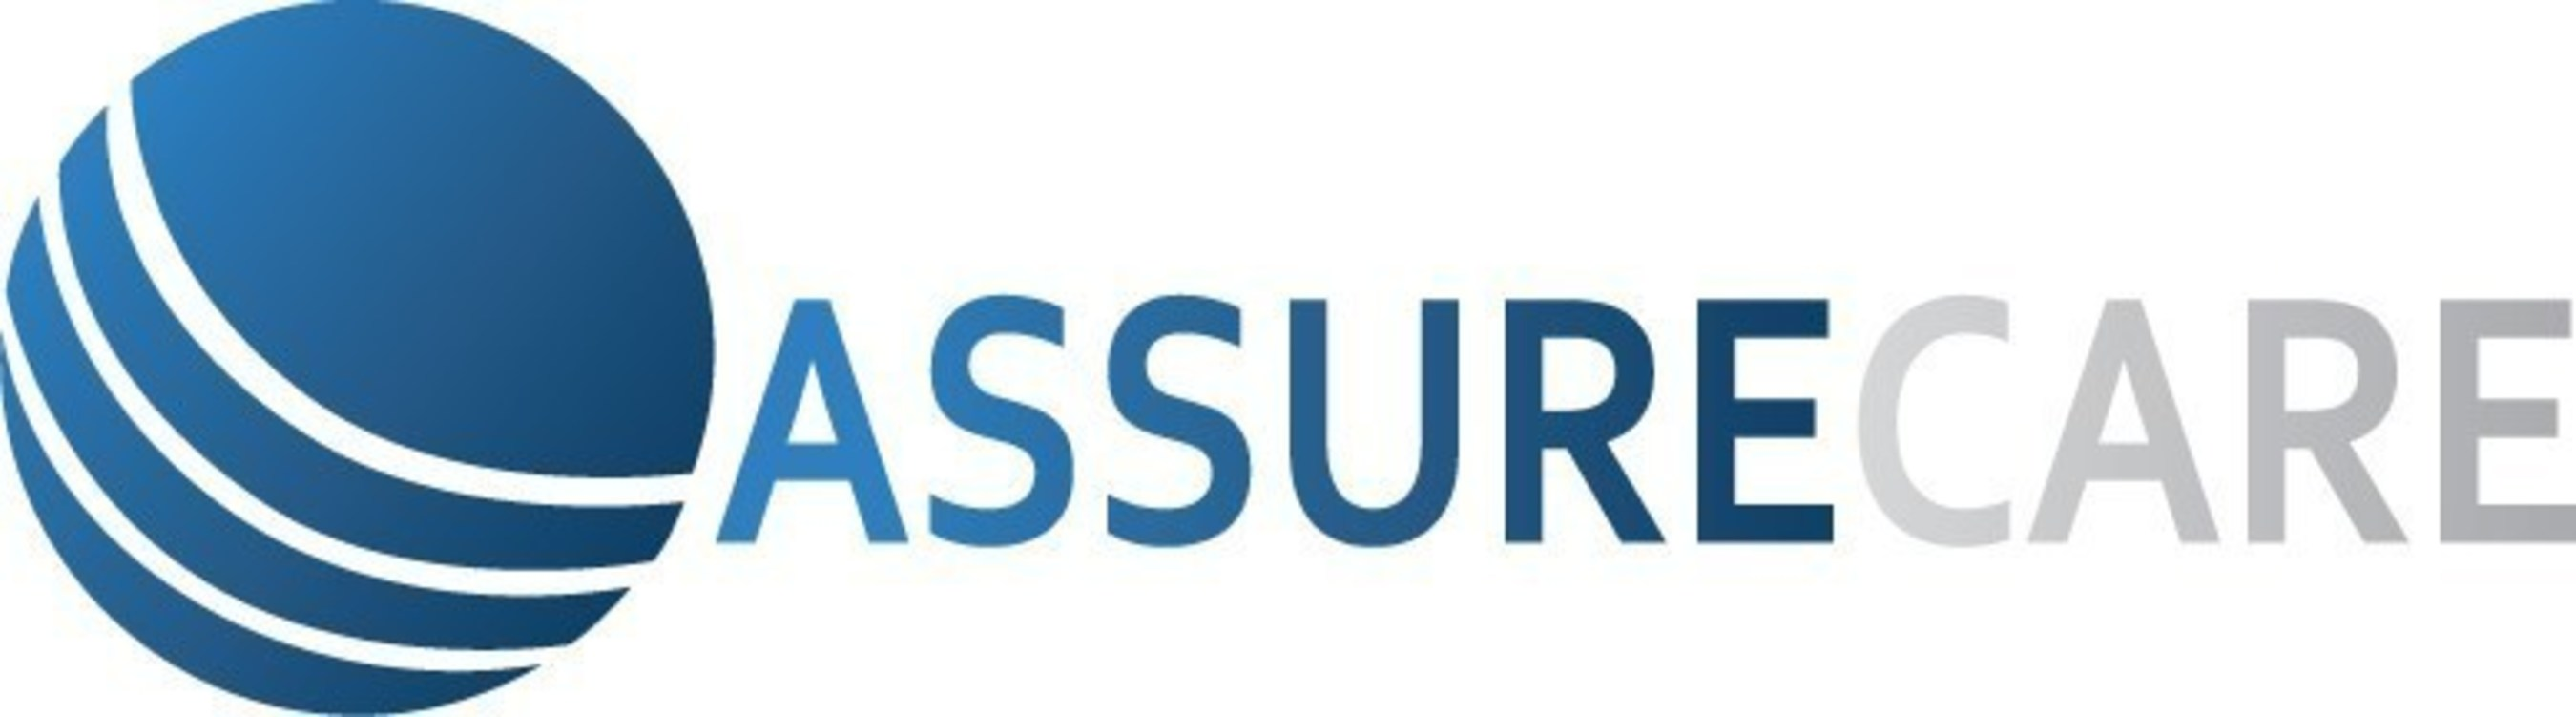 Dr. Yousuf J. Ahmad Takes the Helm at AssureCare as the CEO